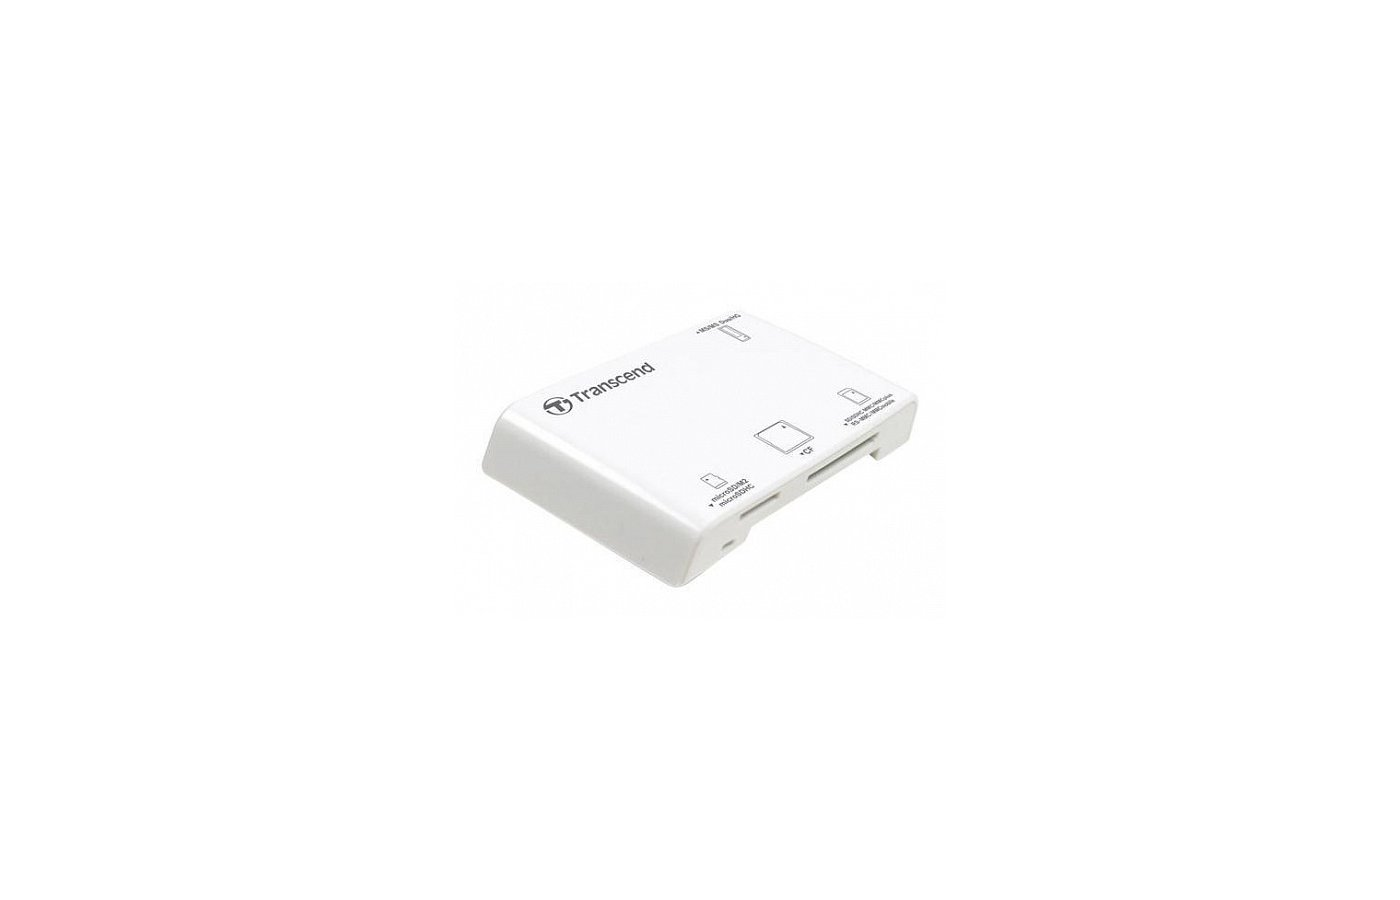 Картридер Transcend All in 1 Multi White USB 2.0 Support SDHC (TS-RDP8W)